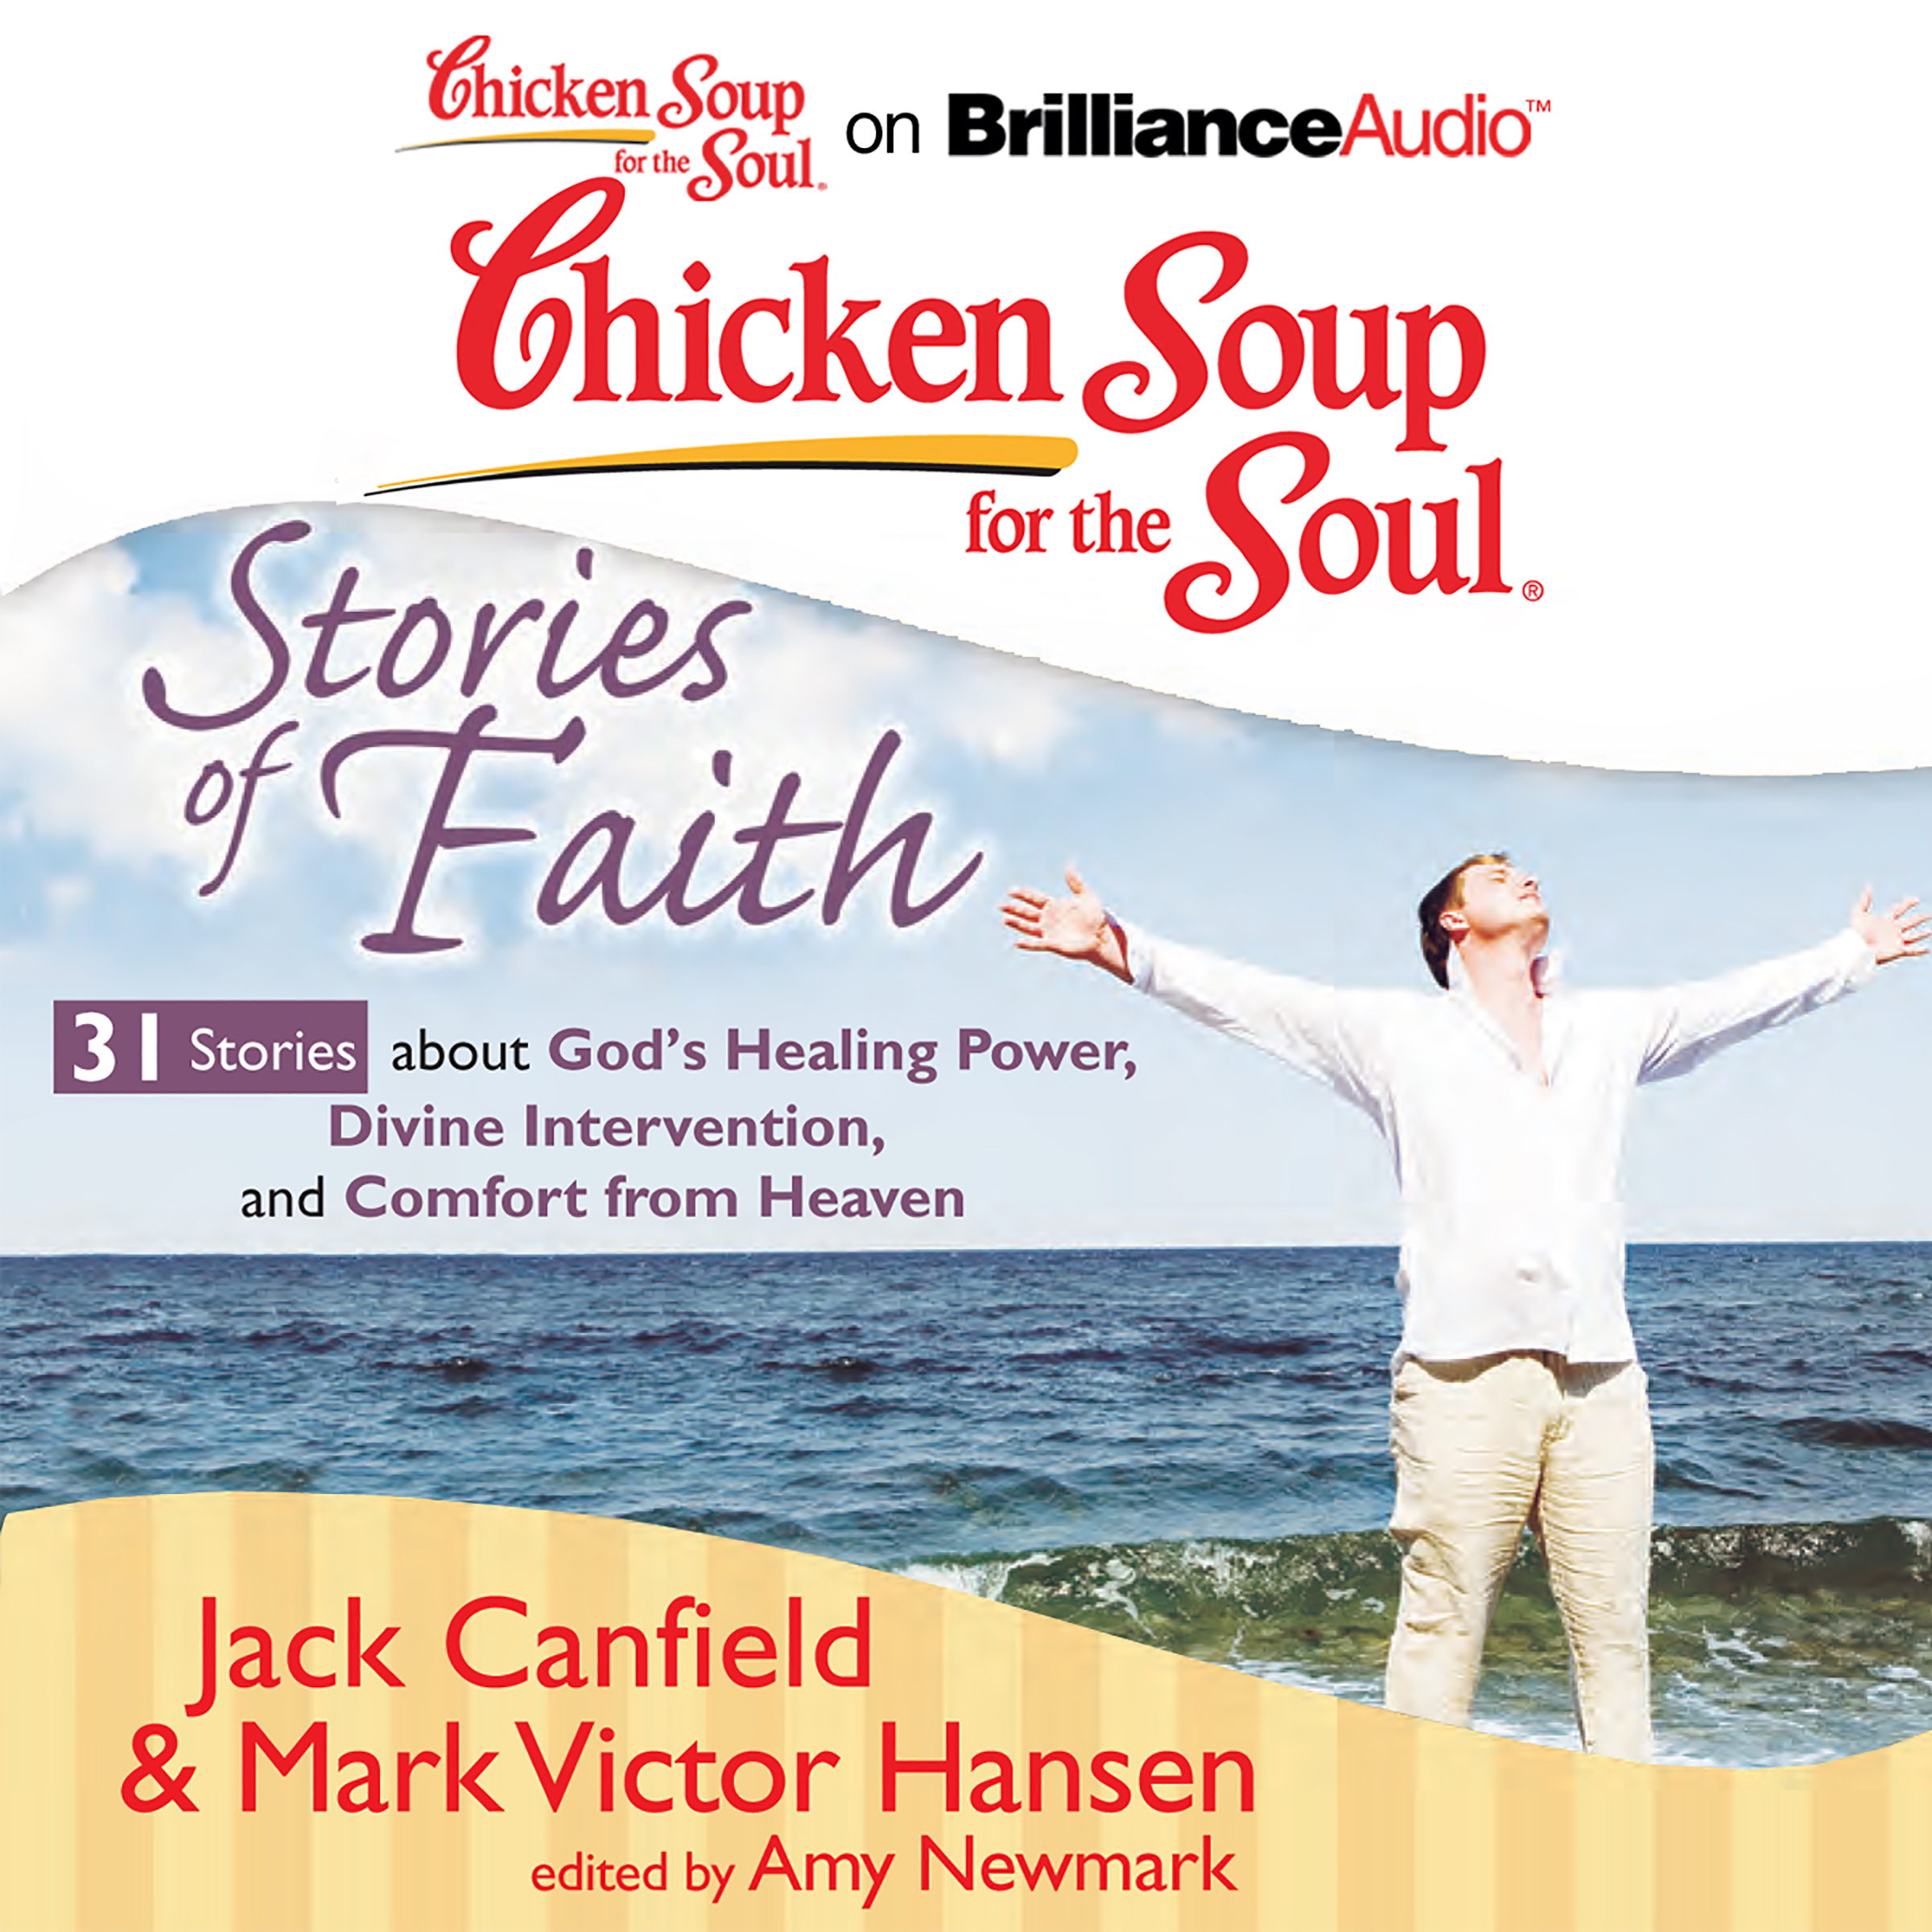 Printable Chicken Soup for the Soul: Stories of Faith - 31 Stories about God's Healing Power, Divine Intervention, and Comfort from Heaven Audiobook Cover Art